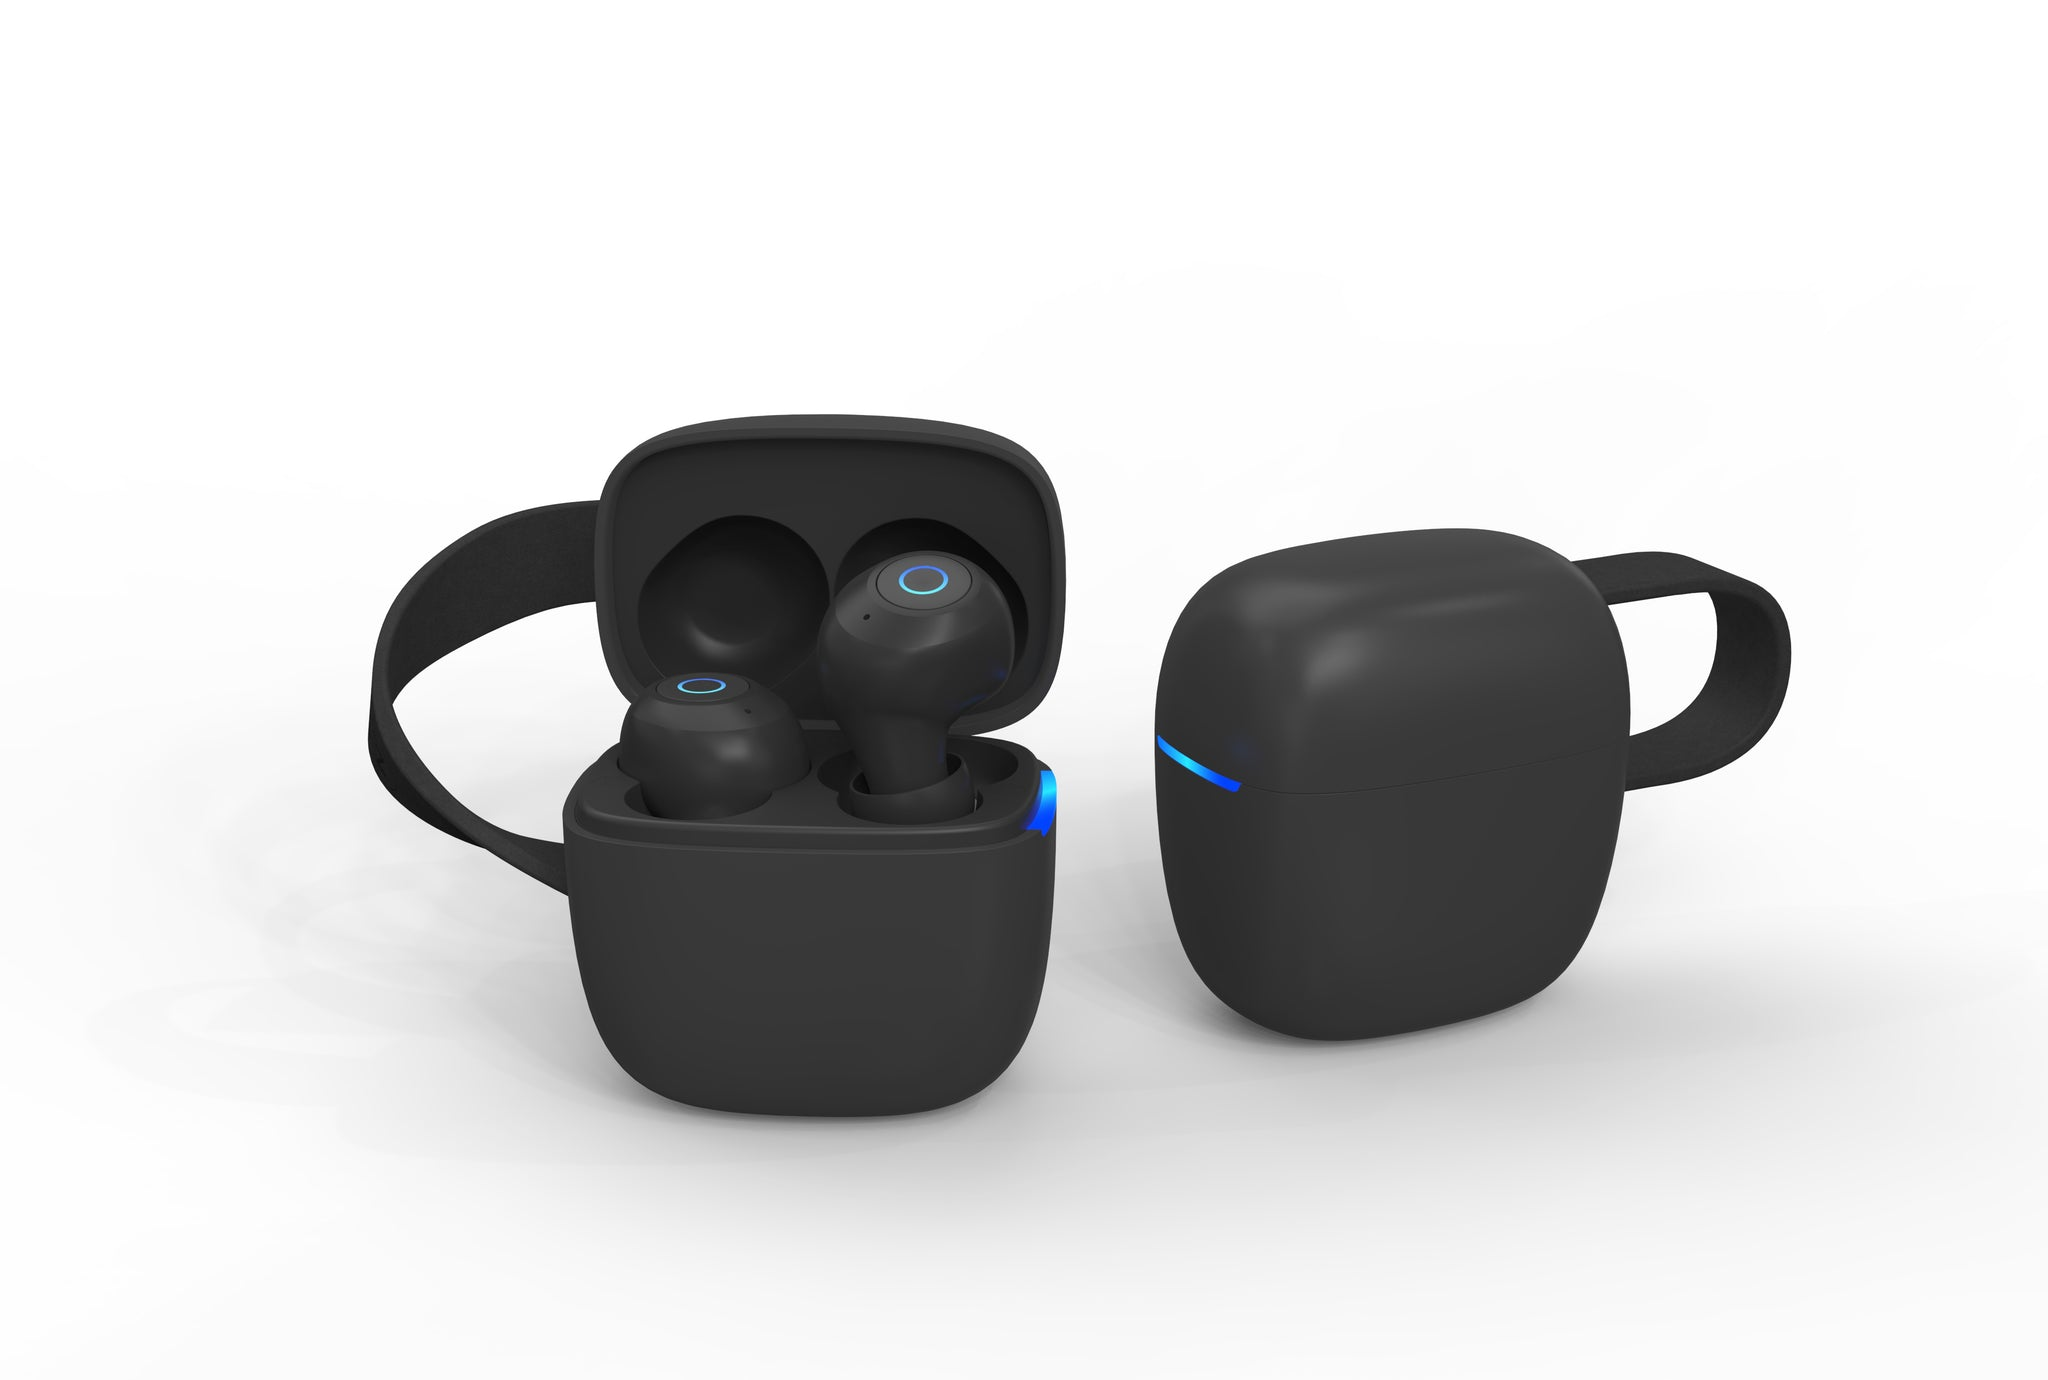 My True Wireless Earbuds, wireless earphone